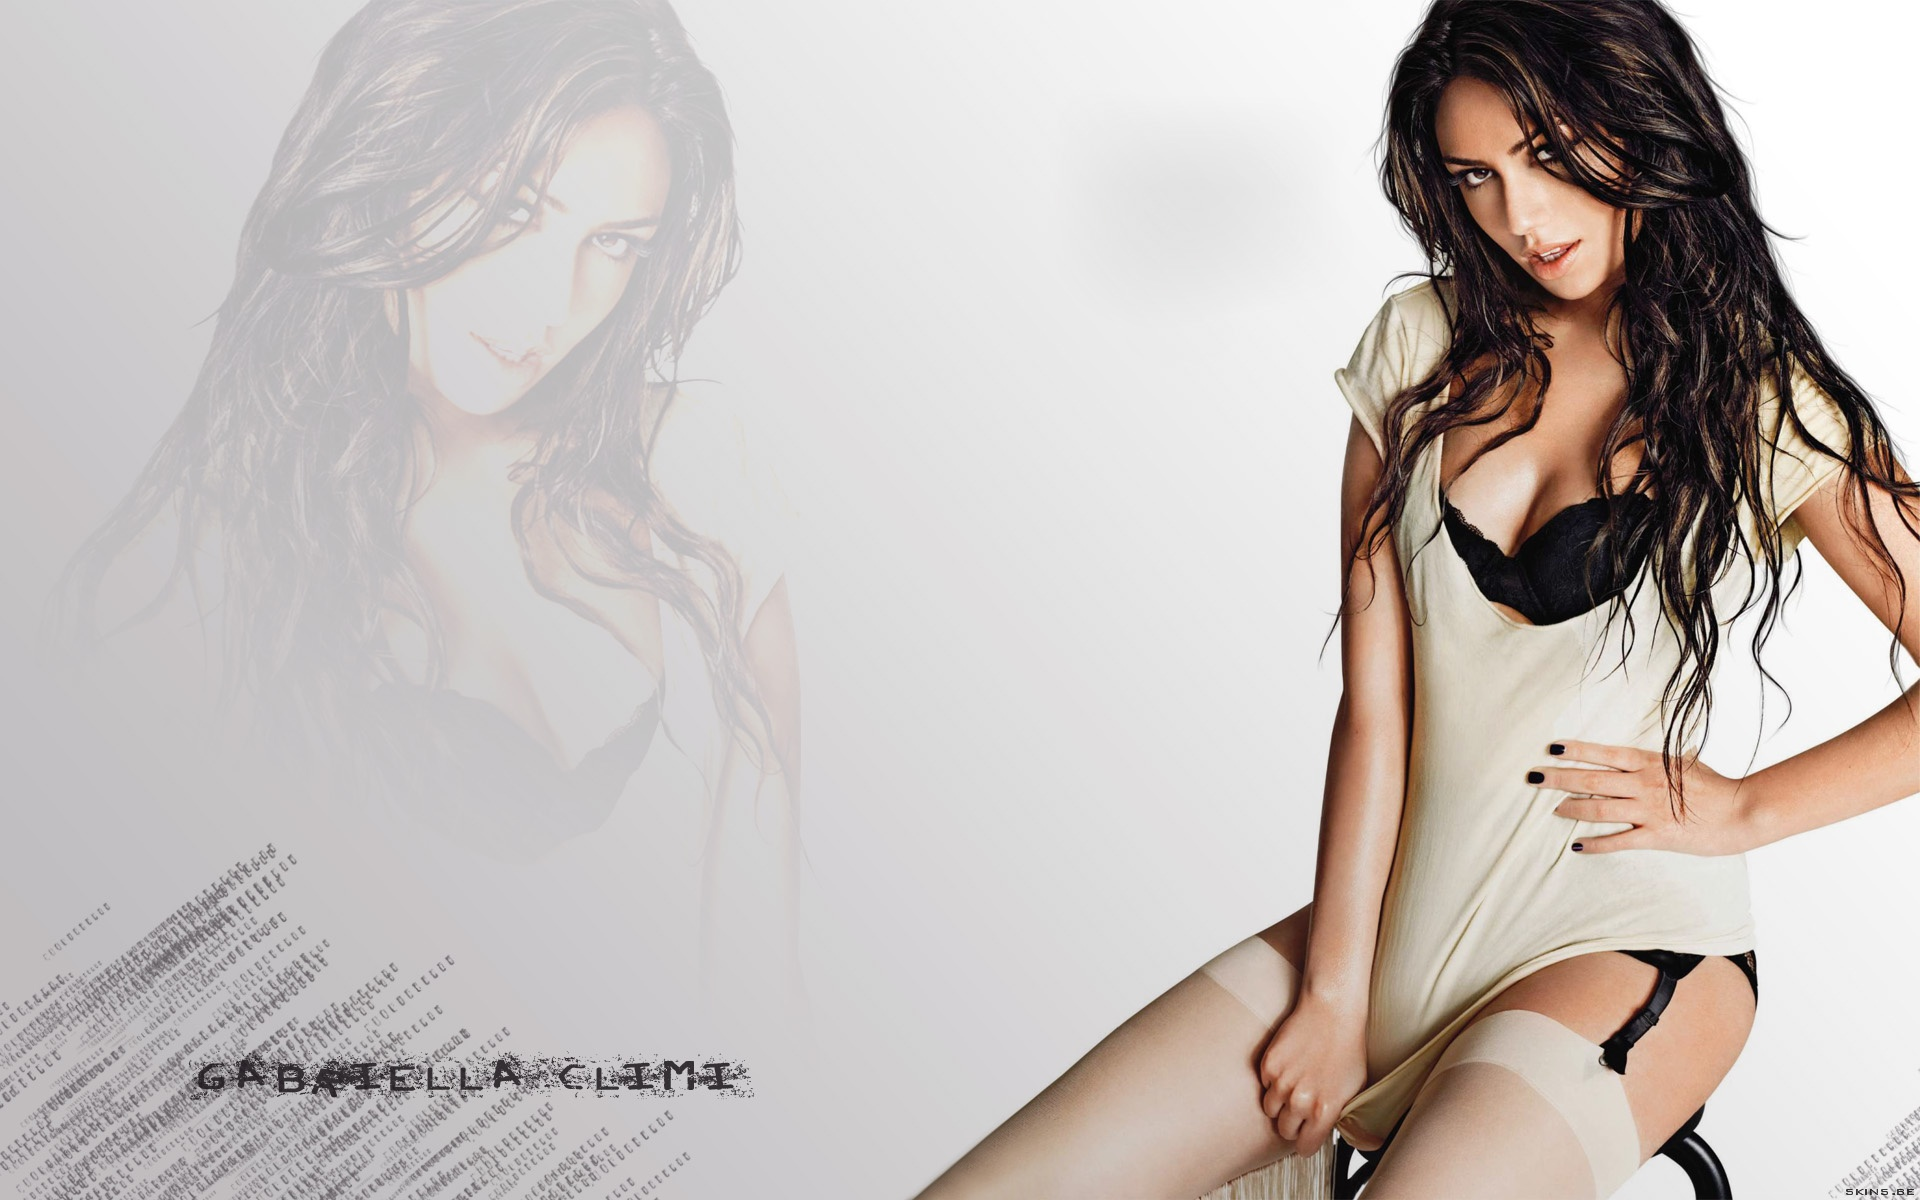 Gabriella Cilmi wallpaper (#39459)